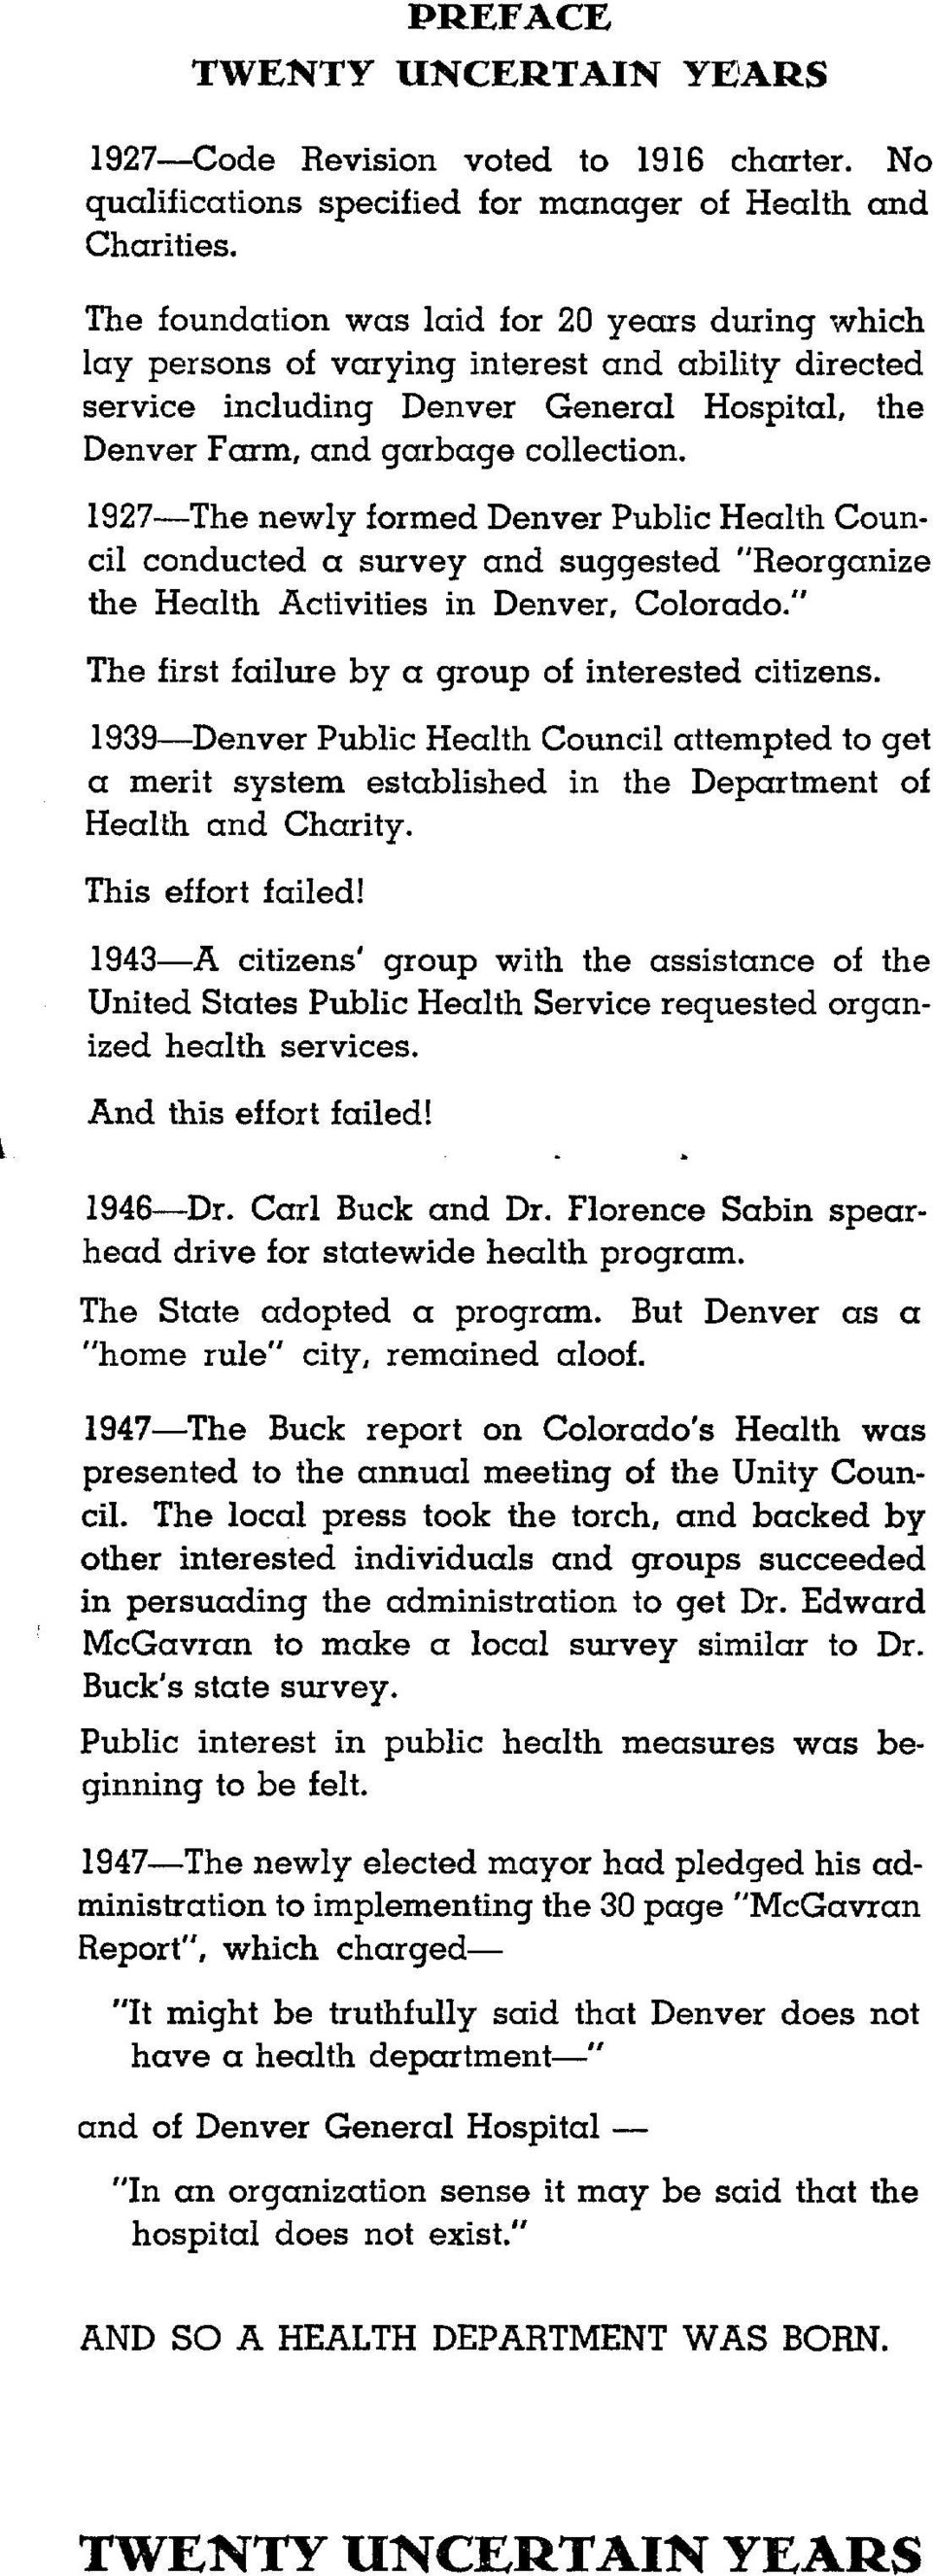 Reorganize the Heath Activities in Denver, Coorado The first faiure by a group of interested citizens 1939-Denver Pubic Heath Counci attempted to get a merit system estabished in the Department of